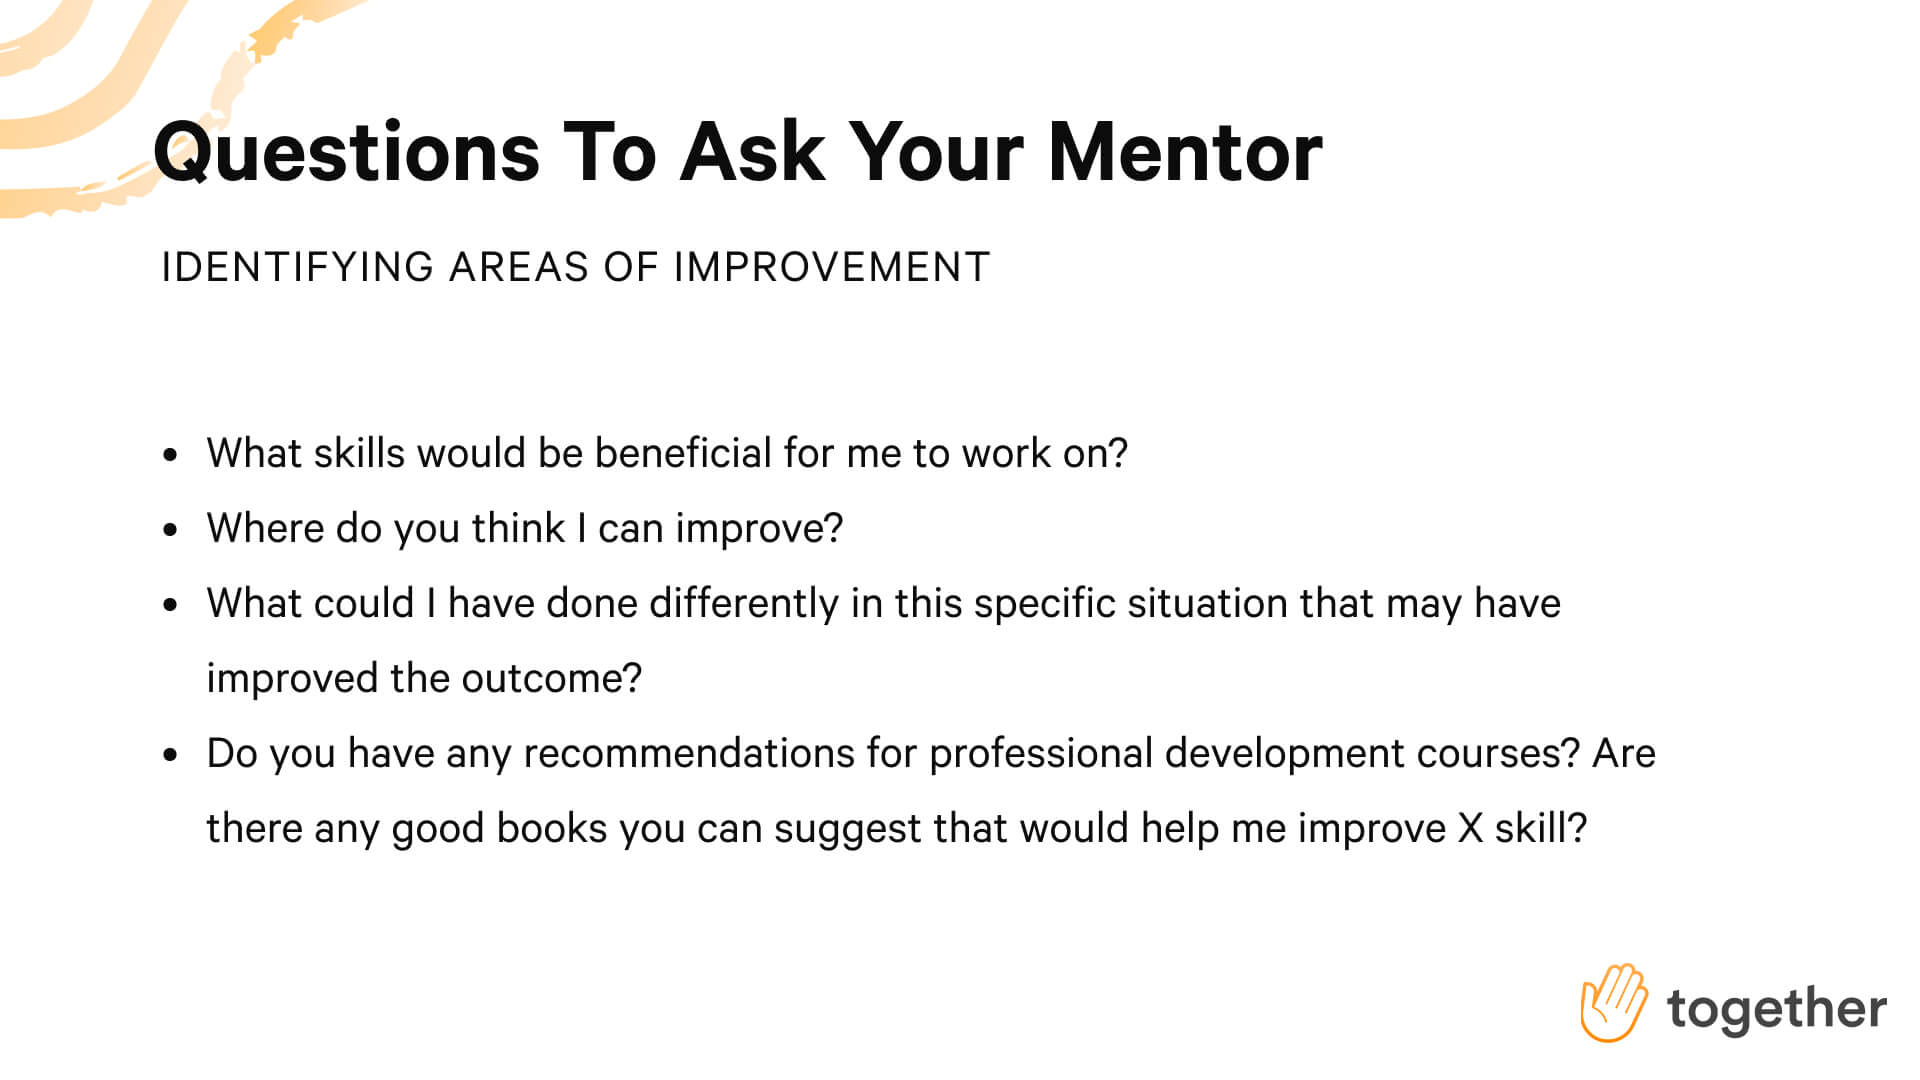 Ask your mentor these questions to get help identifying areas of improvement.